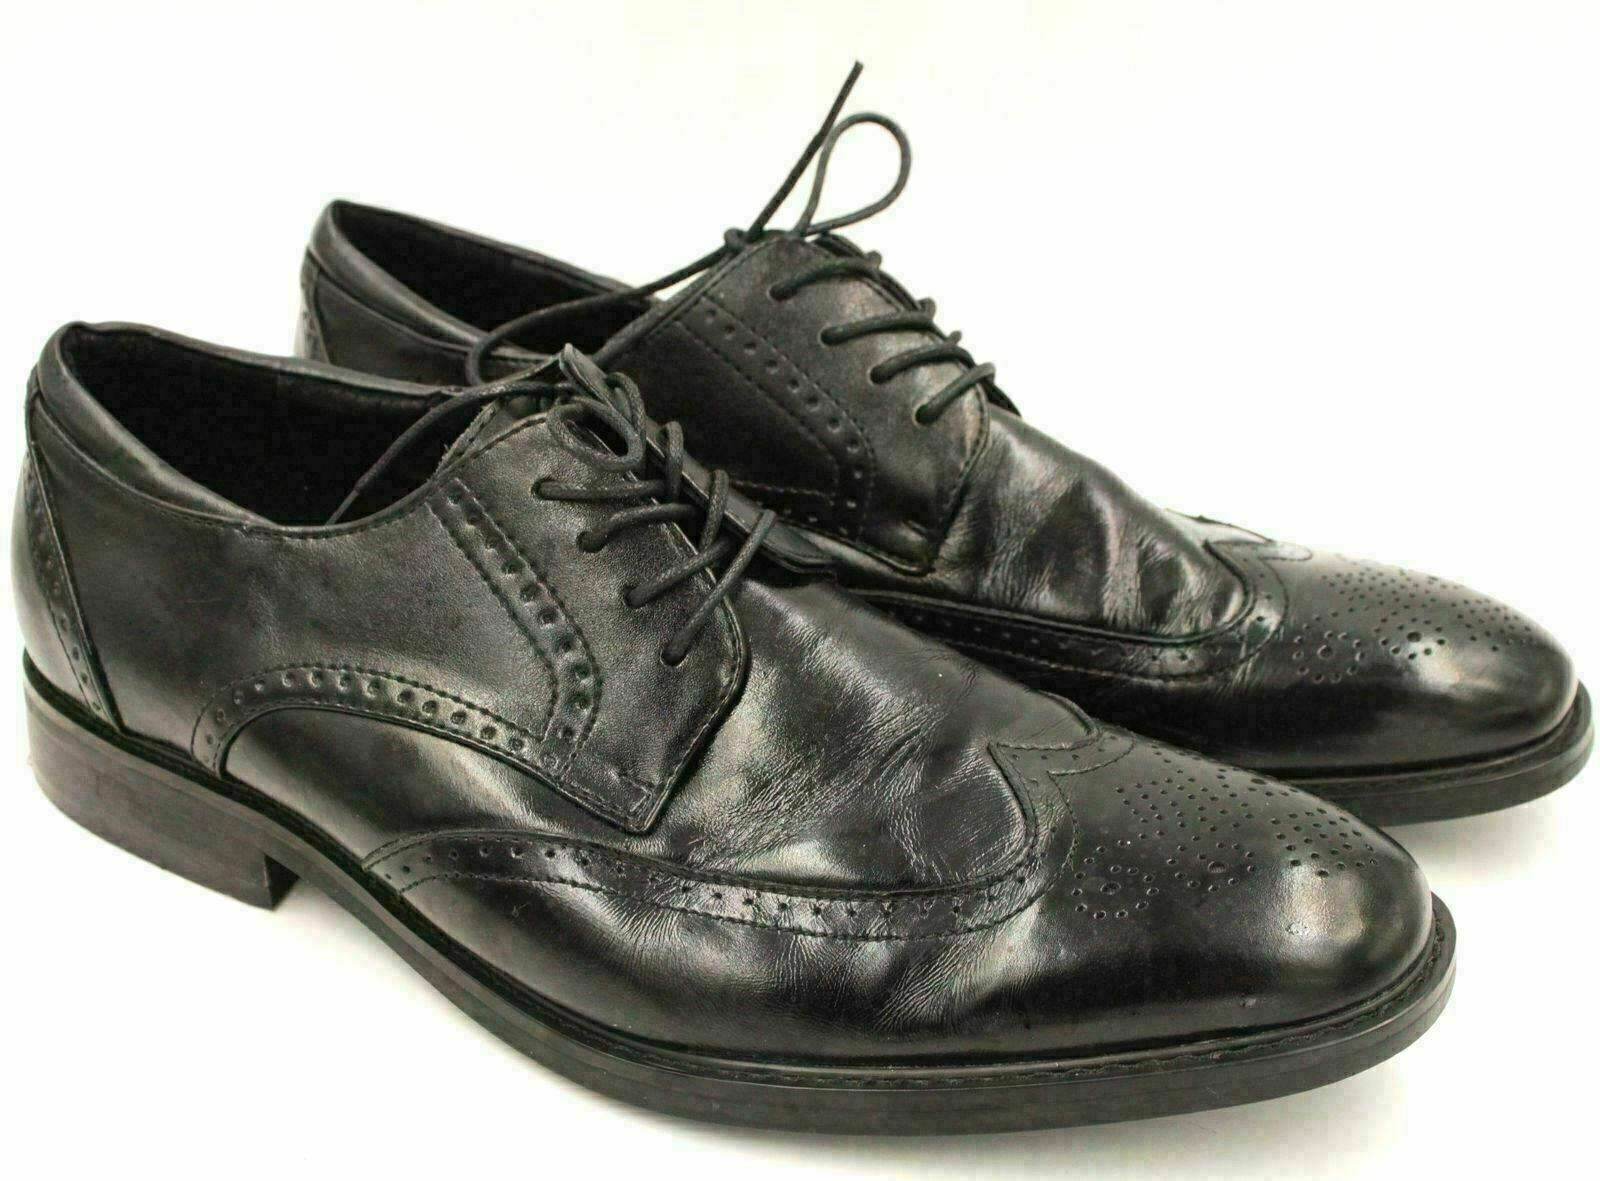 Primary image for Joseph Abboud Men Leather Wingtip Oxfords Size US 11D Black